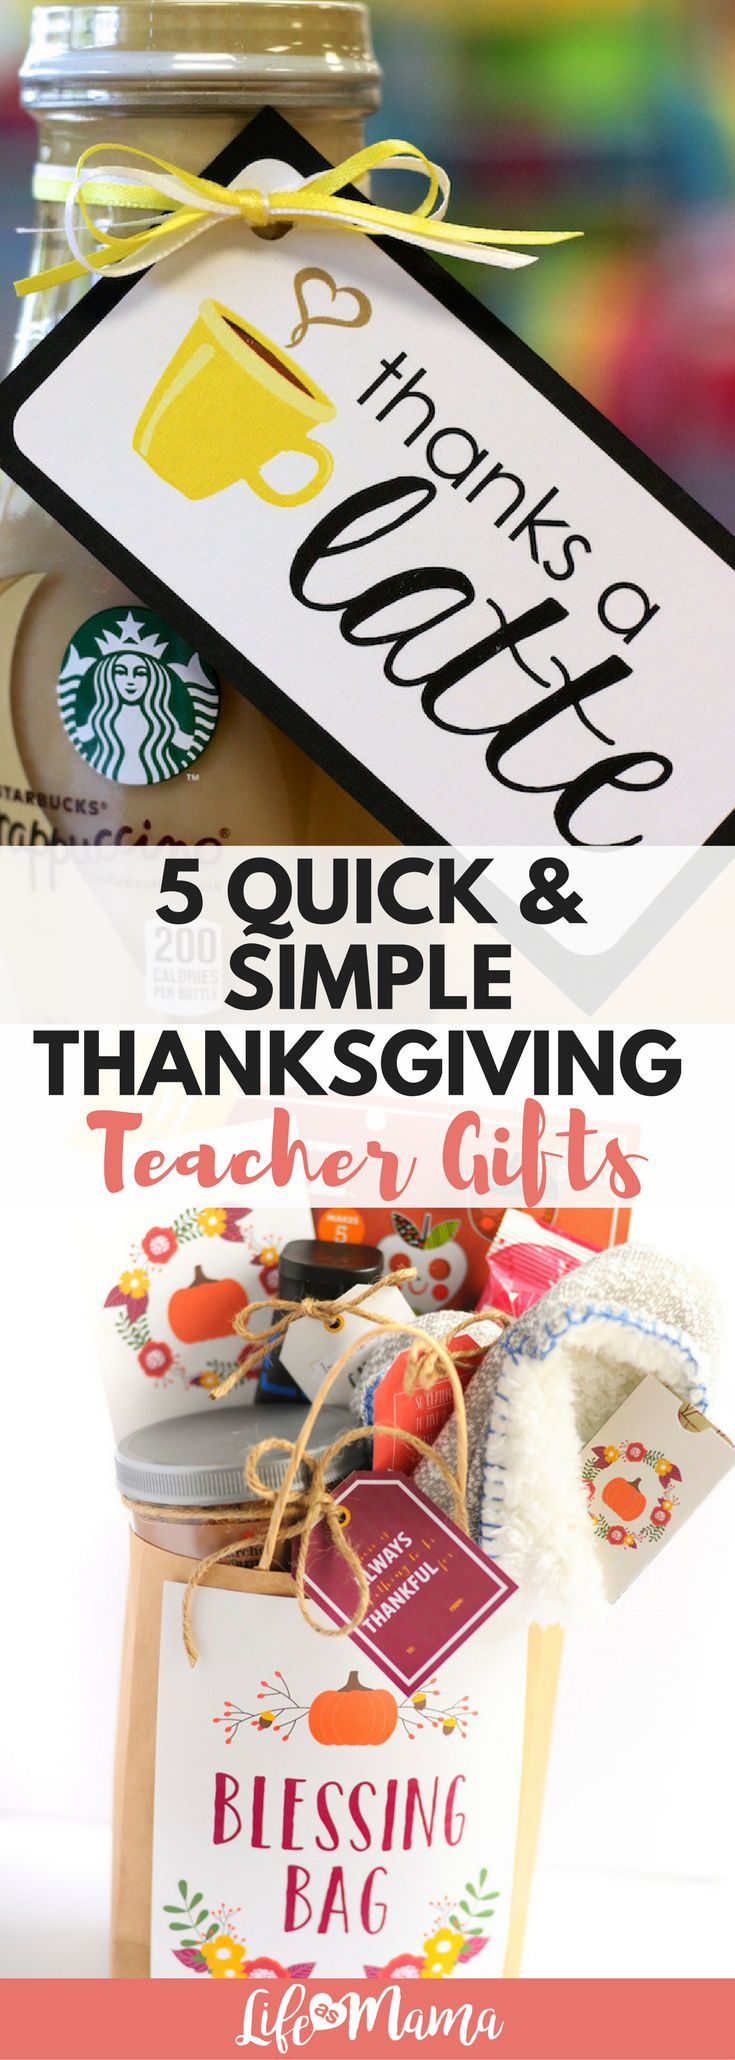 If you're looking for a quick and simple way to bless the teachers in your life, check out these cute Thanksgiving teacher gifts! #teachergifts #thanksgiving #homemadegifts